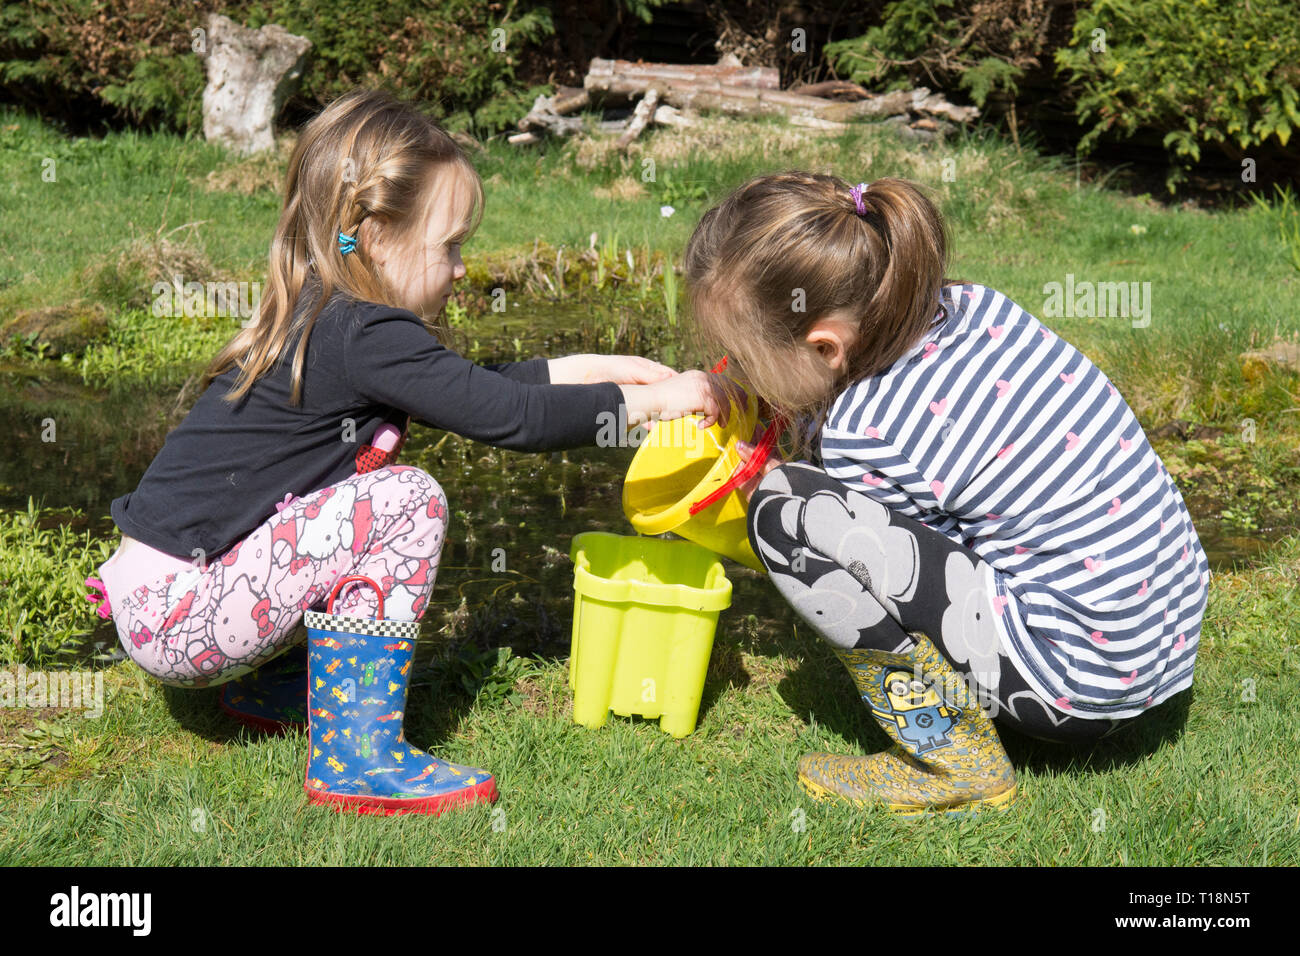 two young girls pond dipping in garden wildlife pond removing tadpoles in children's bucket, sisters, three and seven years old. UK. March. Stock Photo